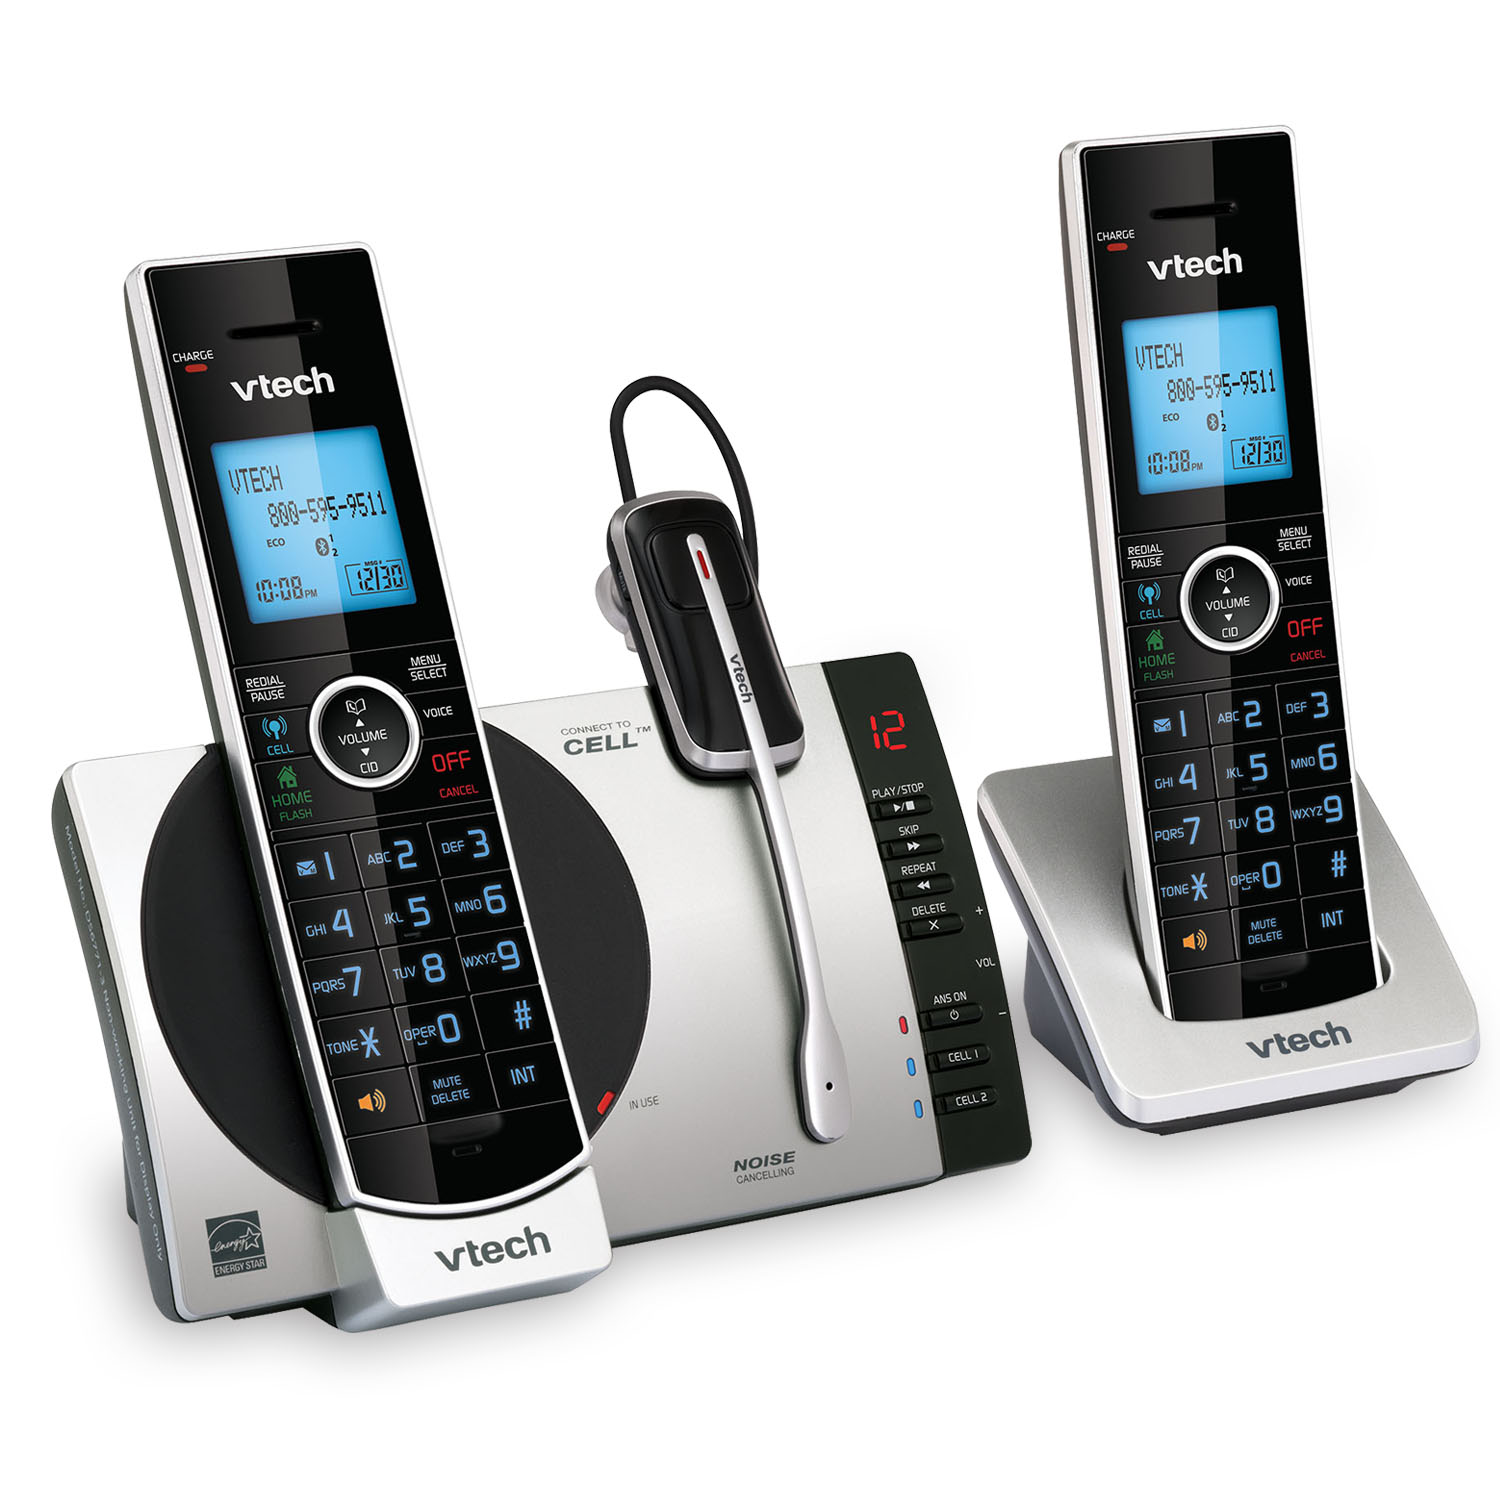 2 handset connect to cell answering system with cordless headset ds6771 3 vtech cordless. Black Bedroom Furniture Sets. Home Design Ideas